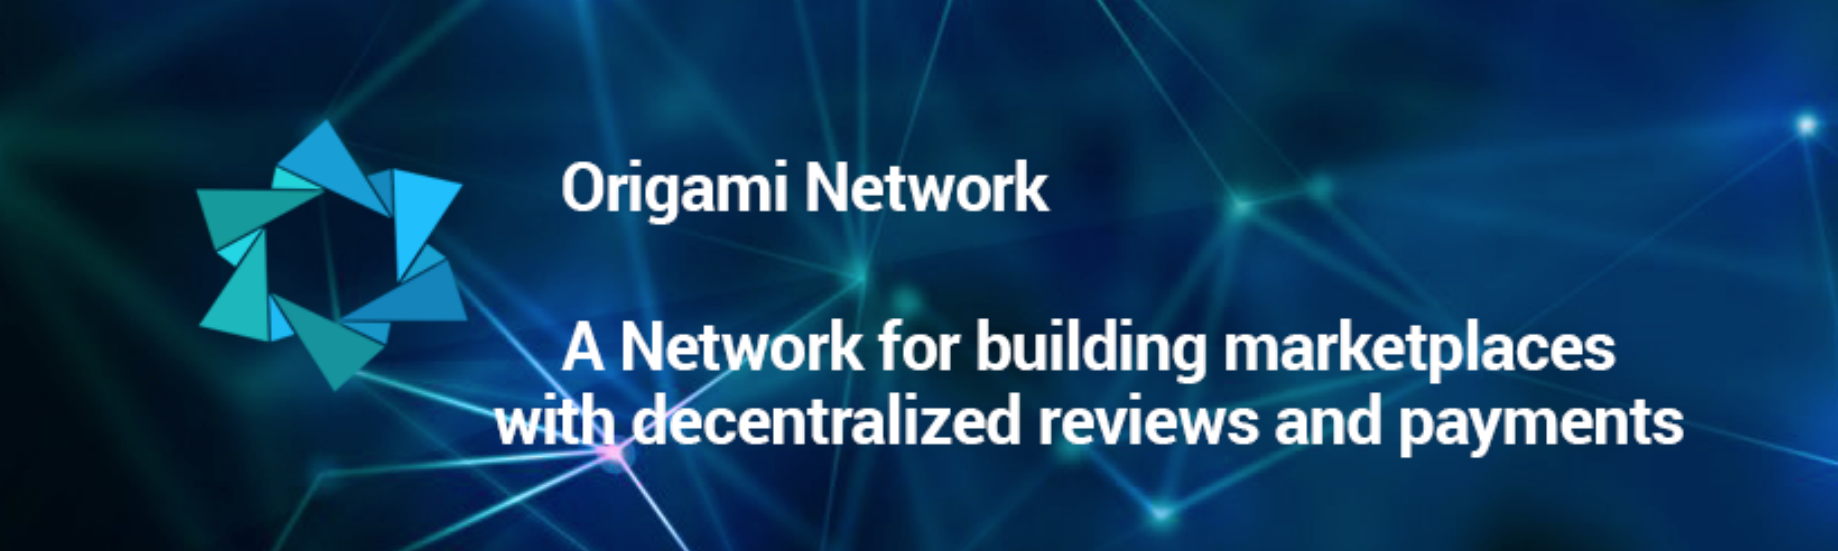 Origami Network — 21/05/2018 update - Origami Network - Medium